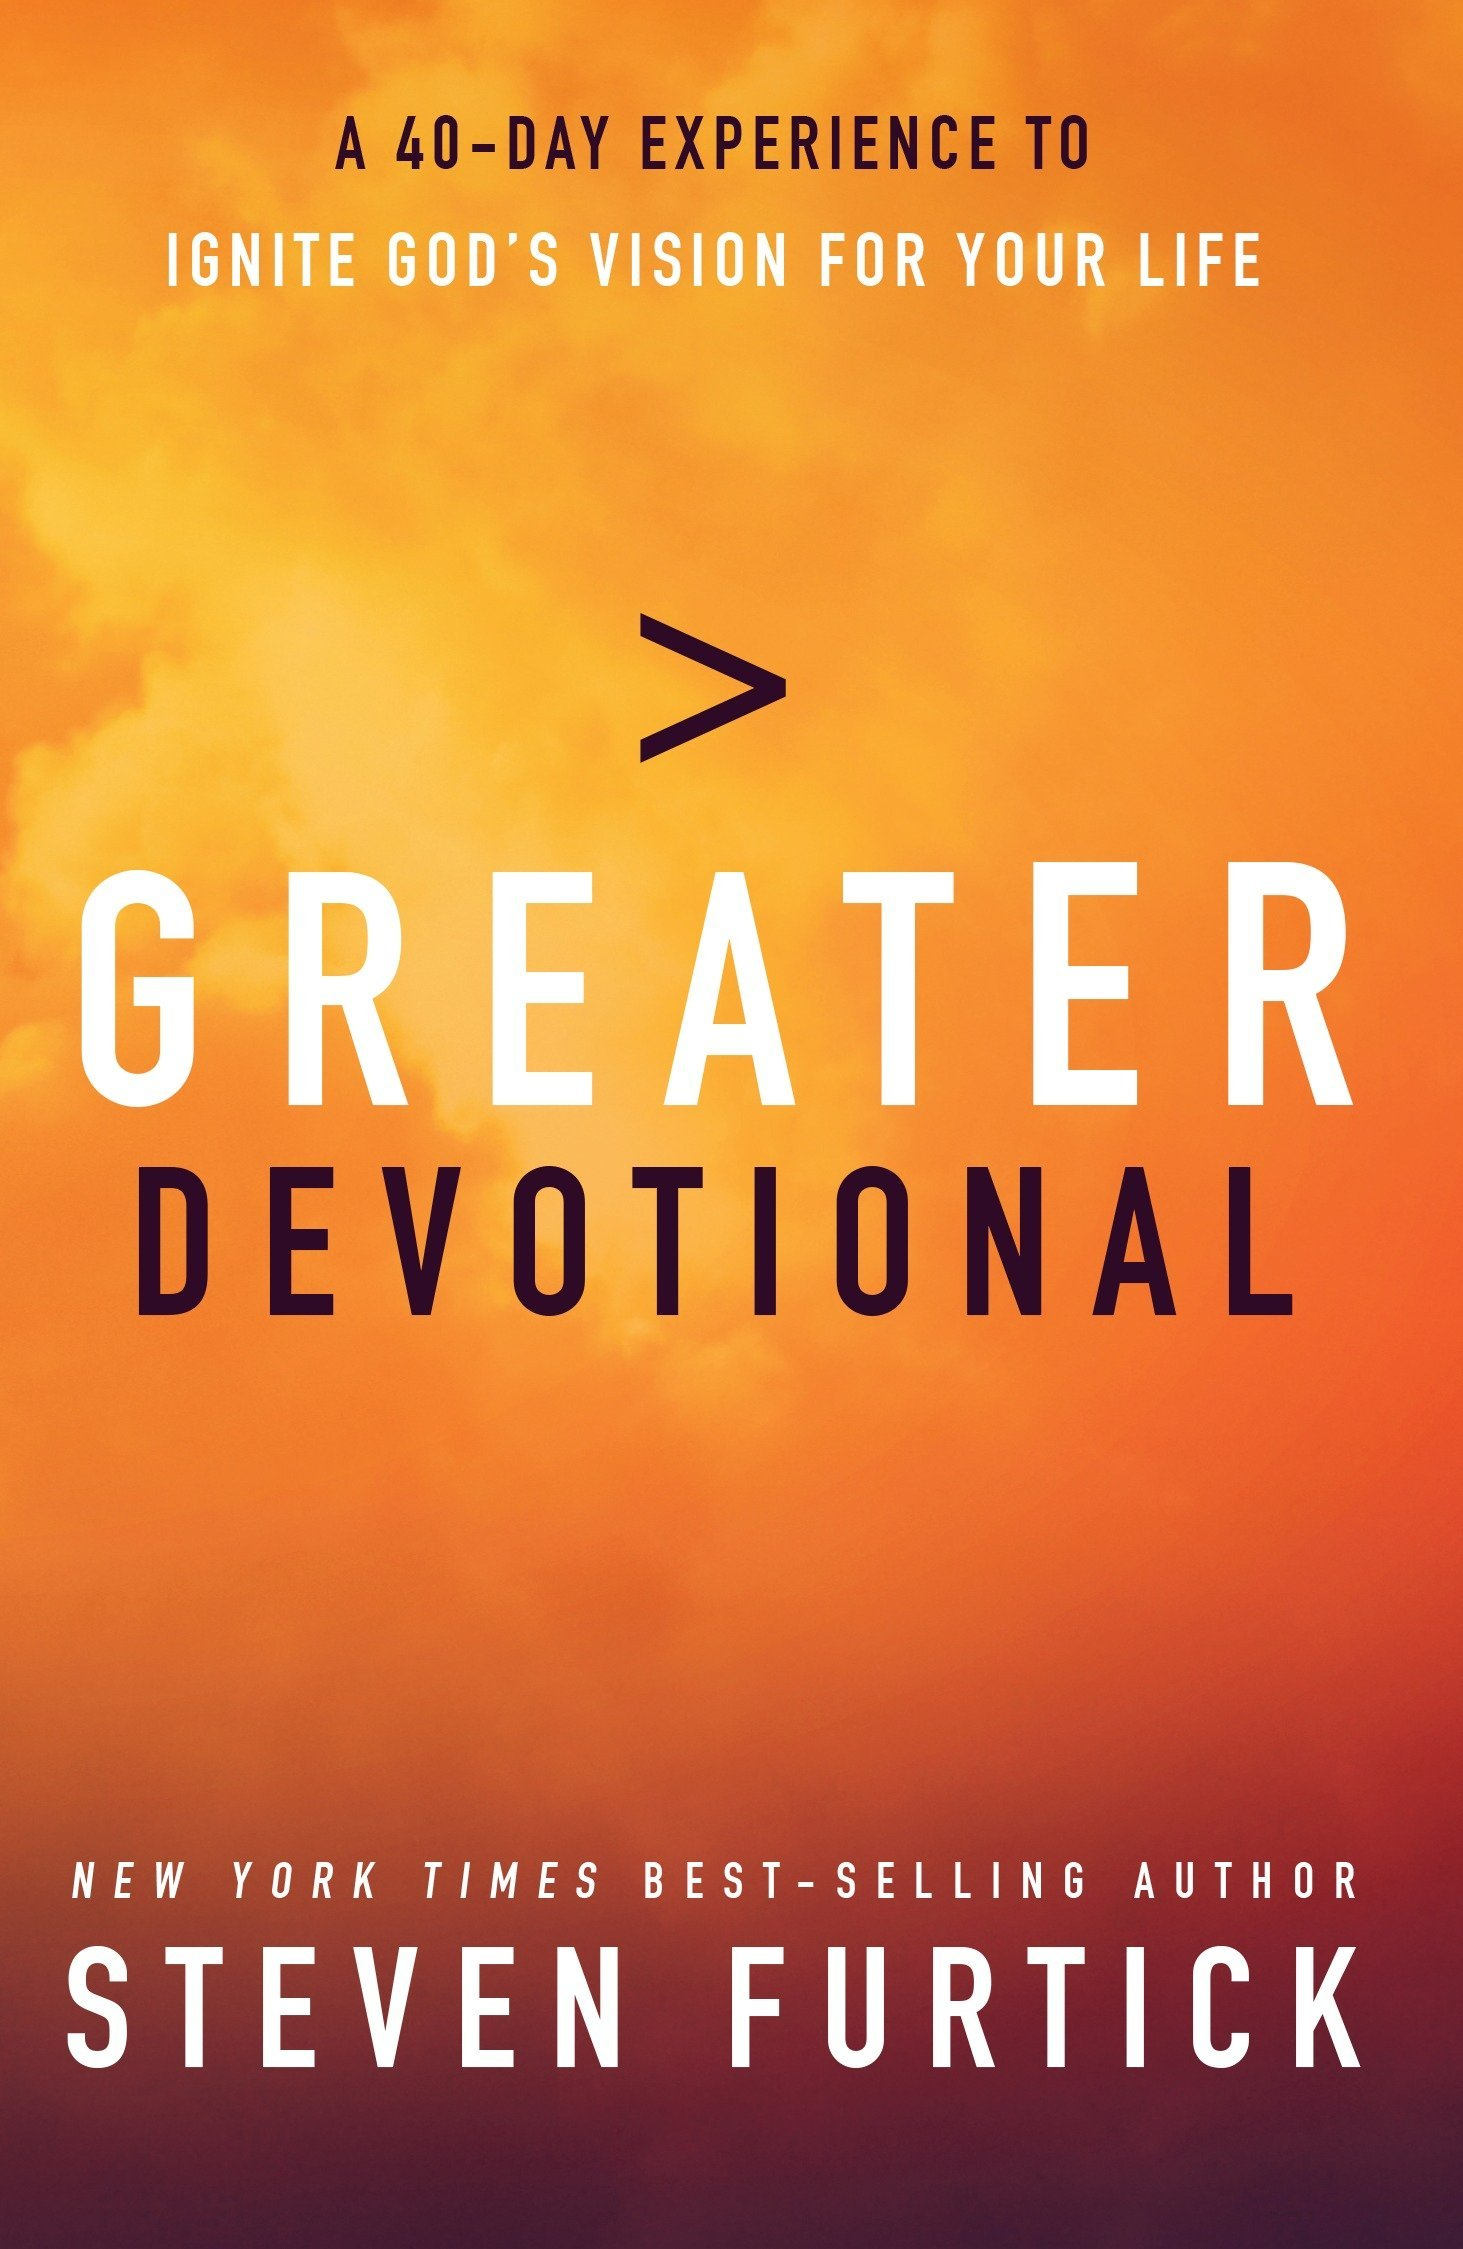 Greater Devotional: A Forty-Day Experience to Ignite God's Vision for Your  Life: Steven Furtick: 9781601425256: Amazon.com: Books